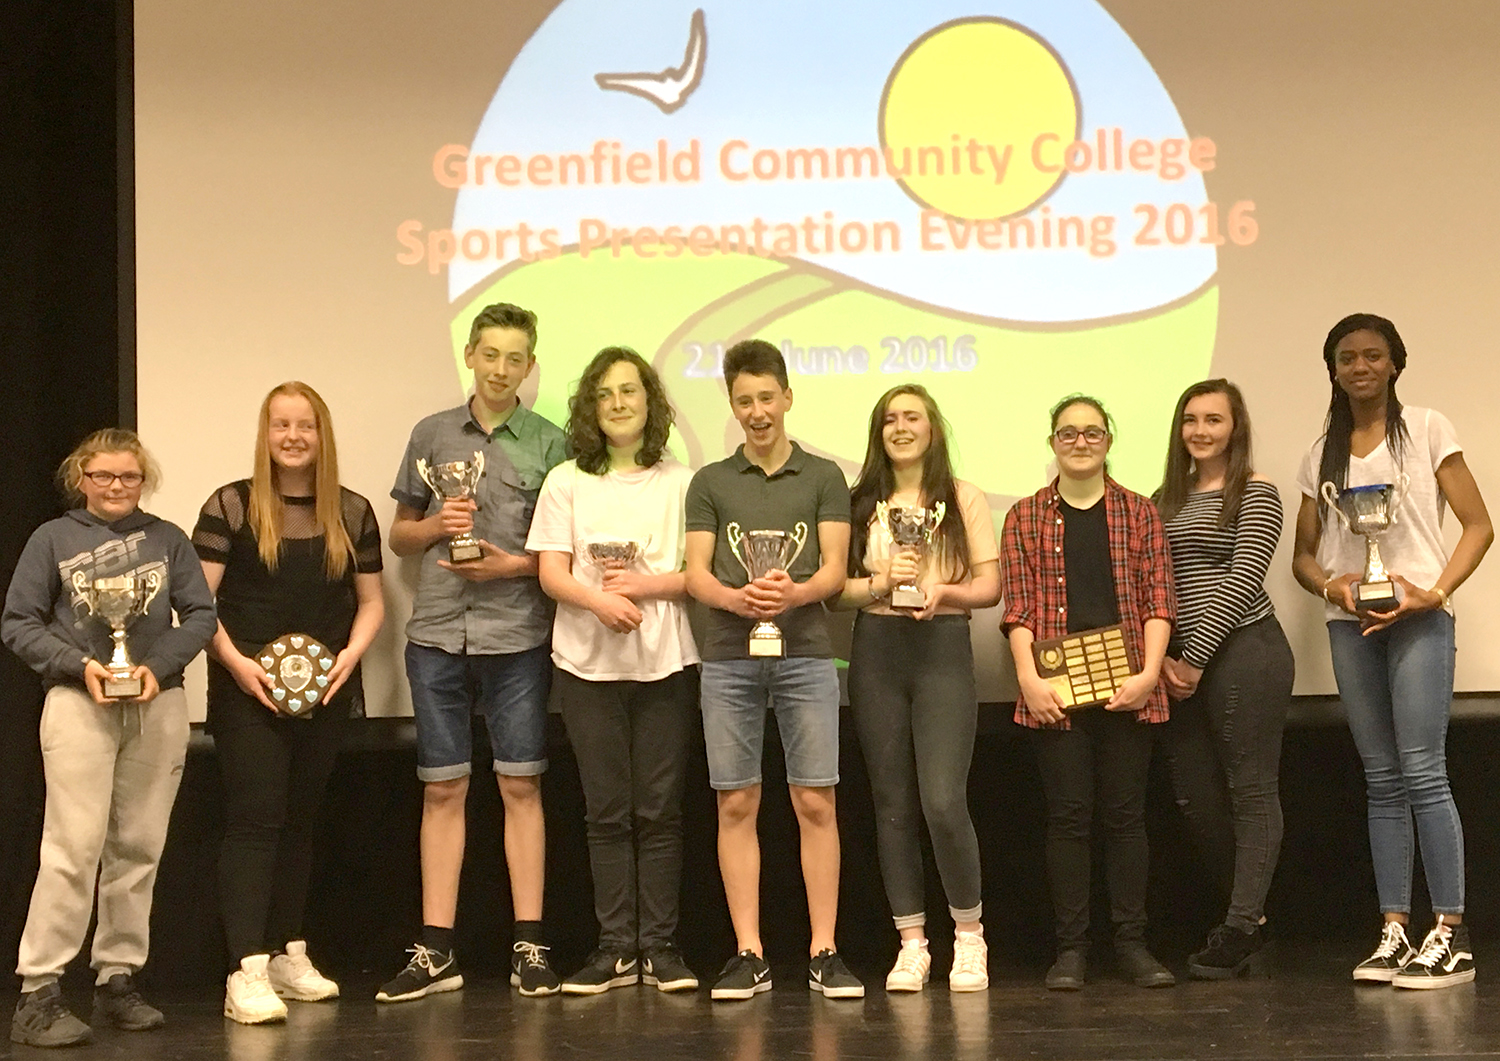 Sports Awards at Greenfield Community College